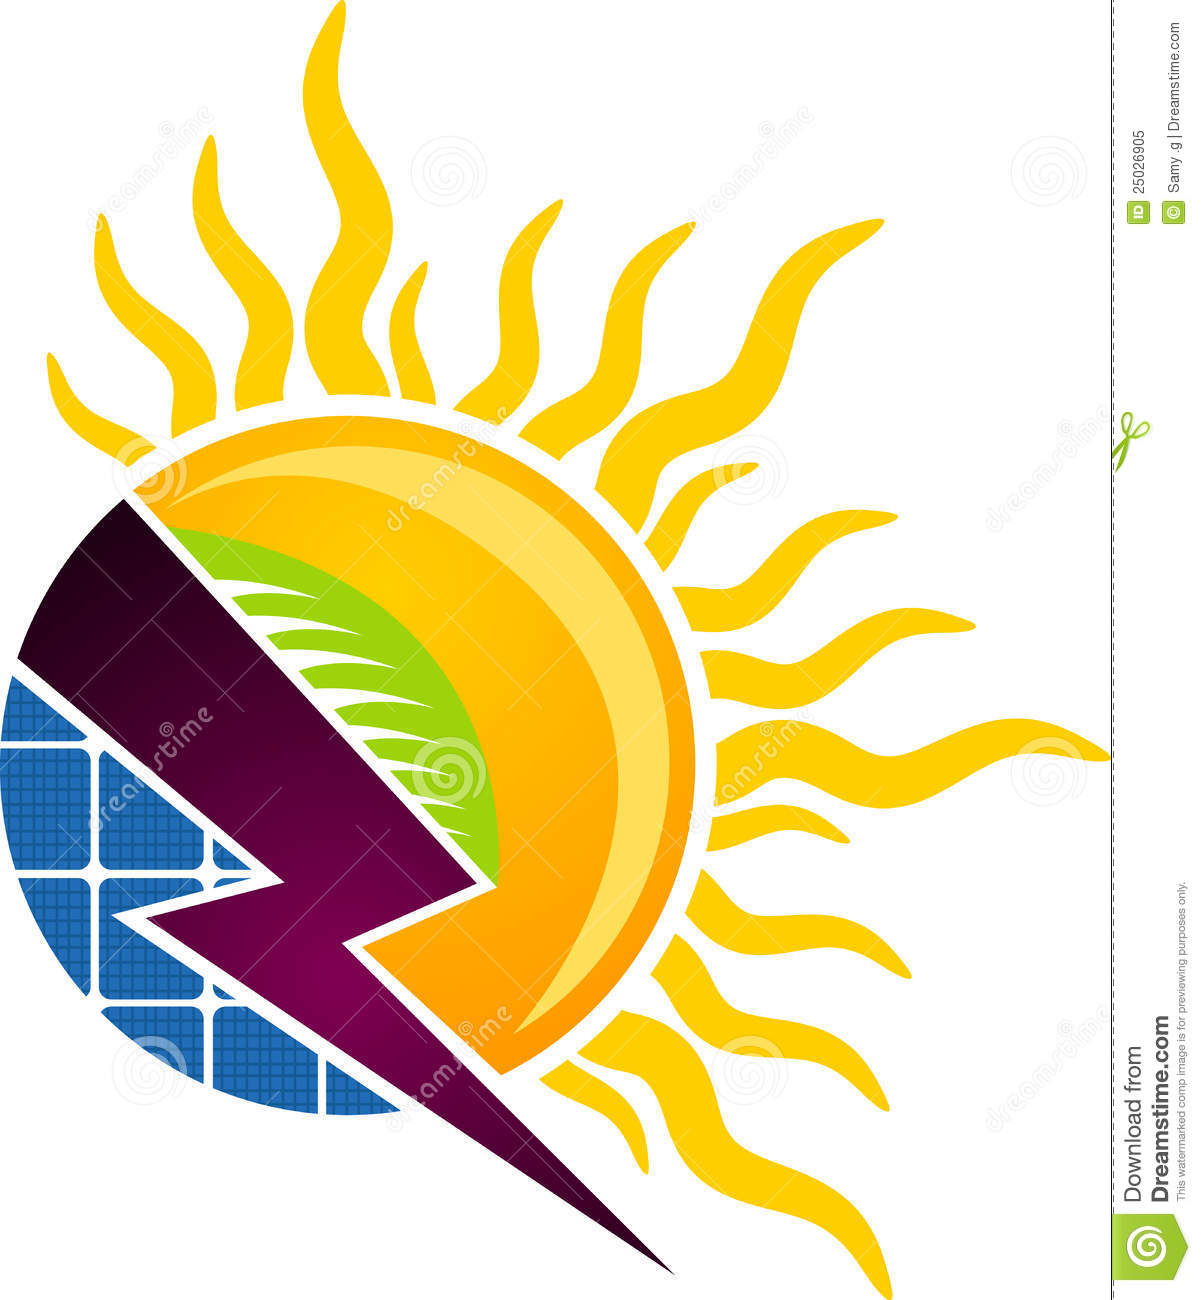 Illustration art of a solar concept logo with isolated background.